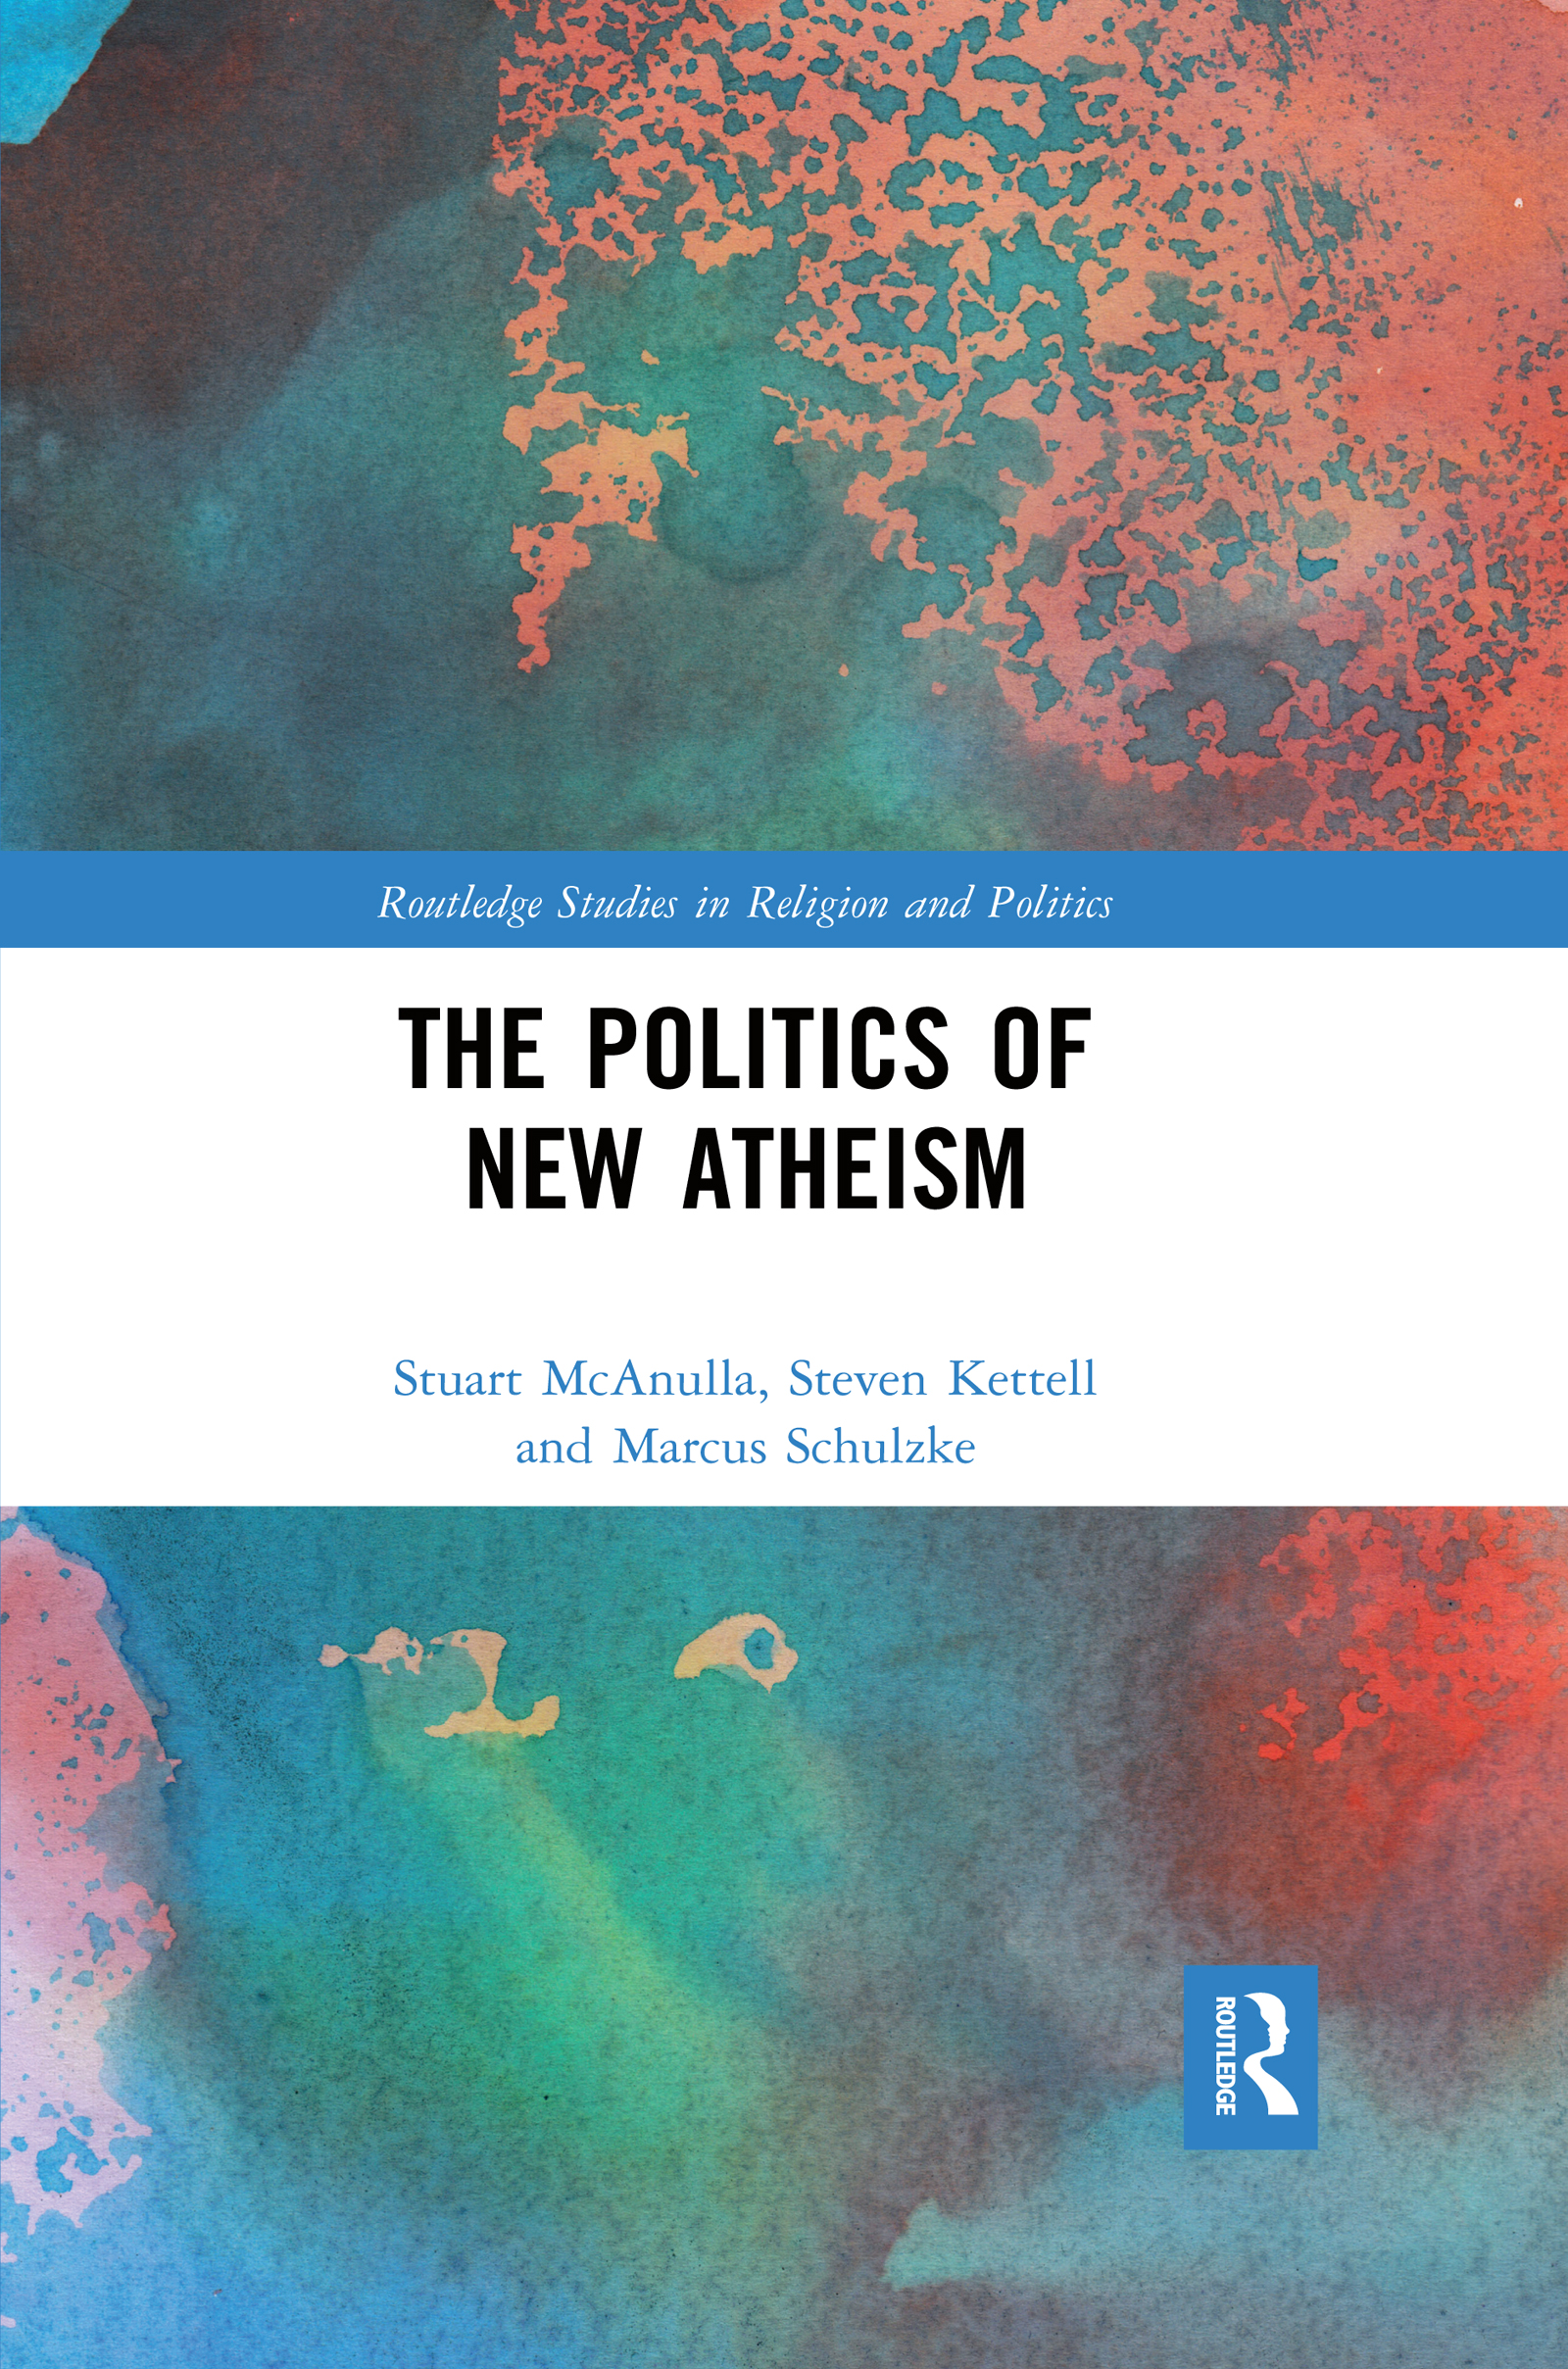 The Politics of New Atheism